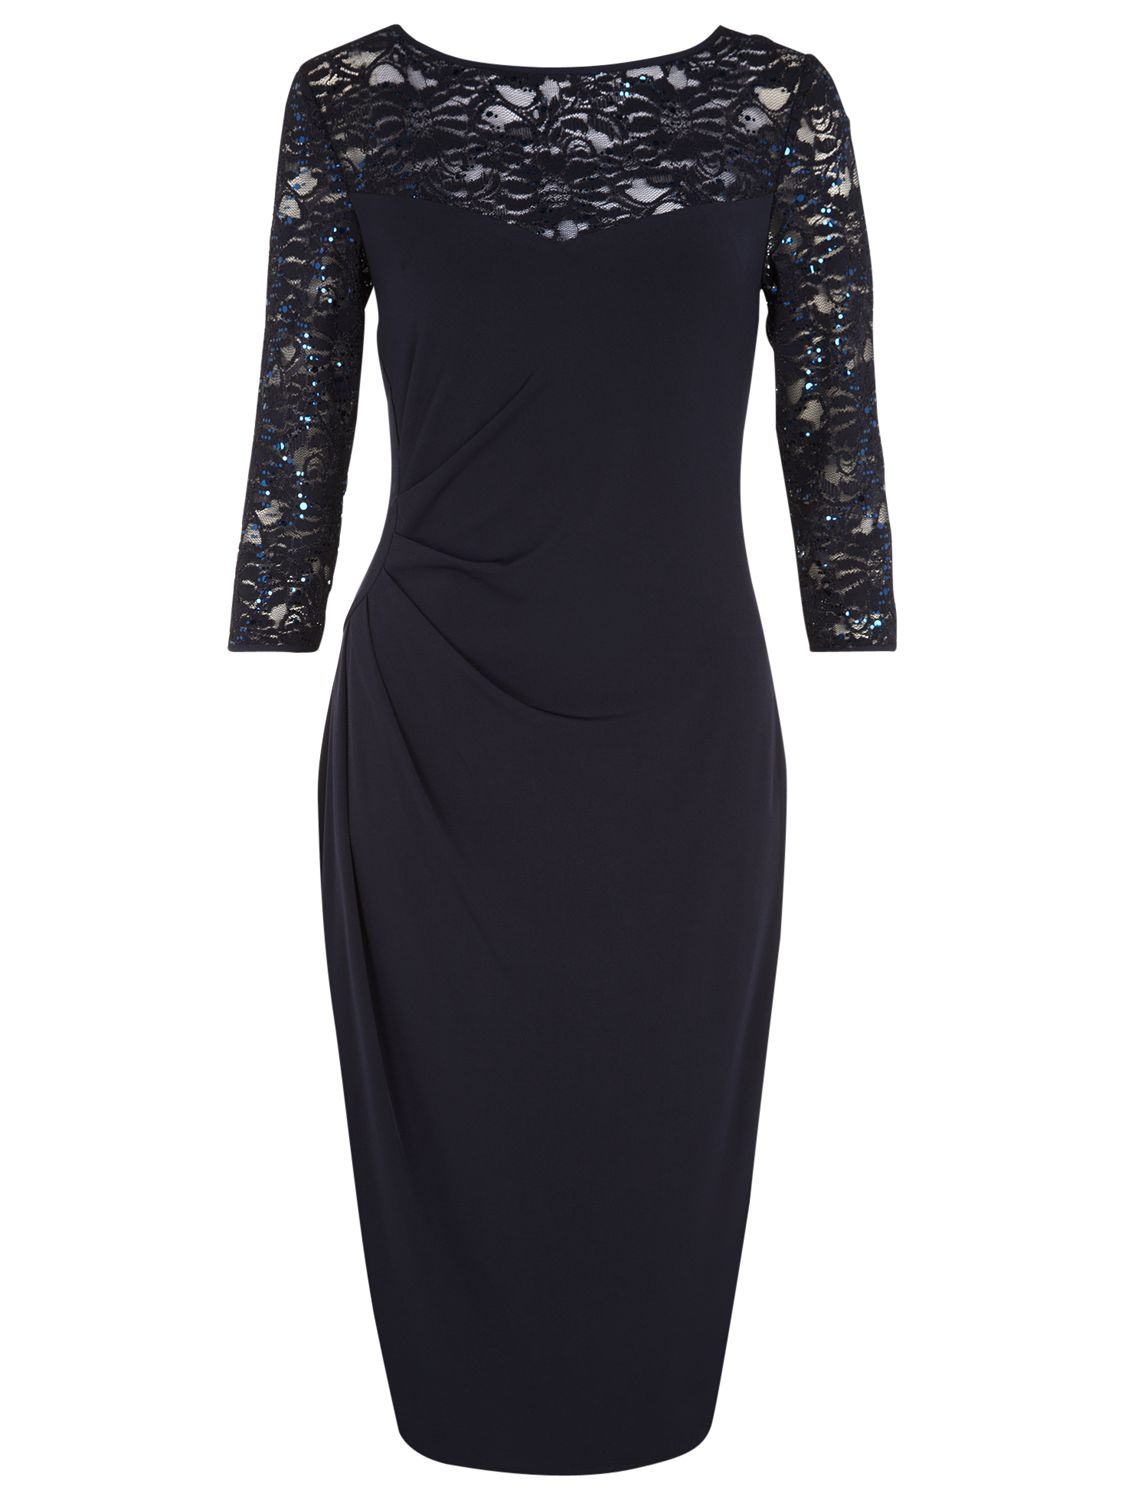 planet lace jersey dress navy, planet, lace, jersey, dress, navy, 8|10|14|12|16|18, clearance, womenswear offers, womens dresses offers, new years party offers, women, plus size, inactive womenswear, new reductions, womens dresses, special offers, 1675110